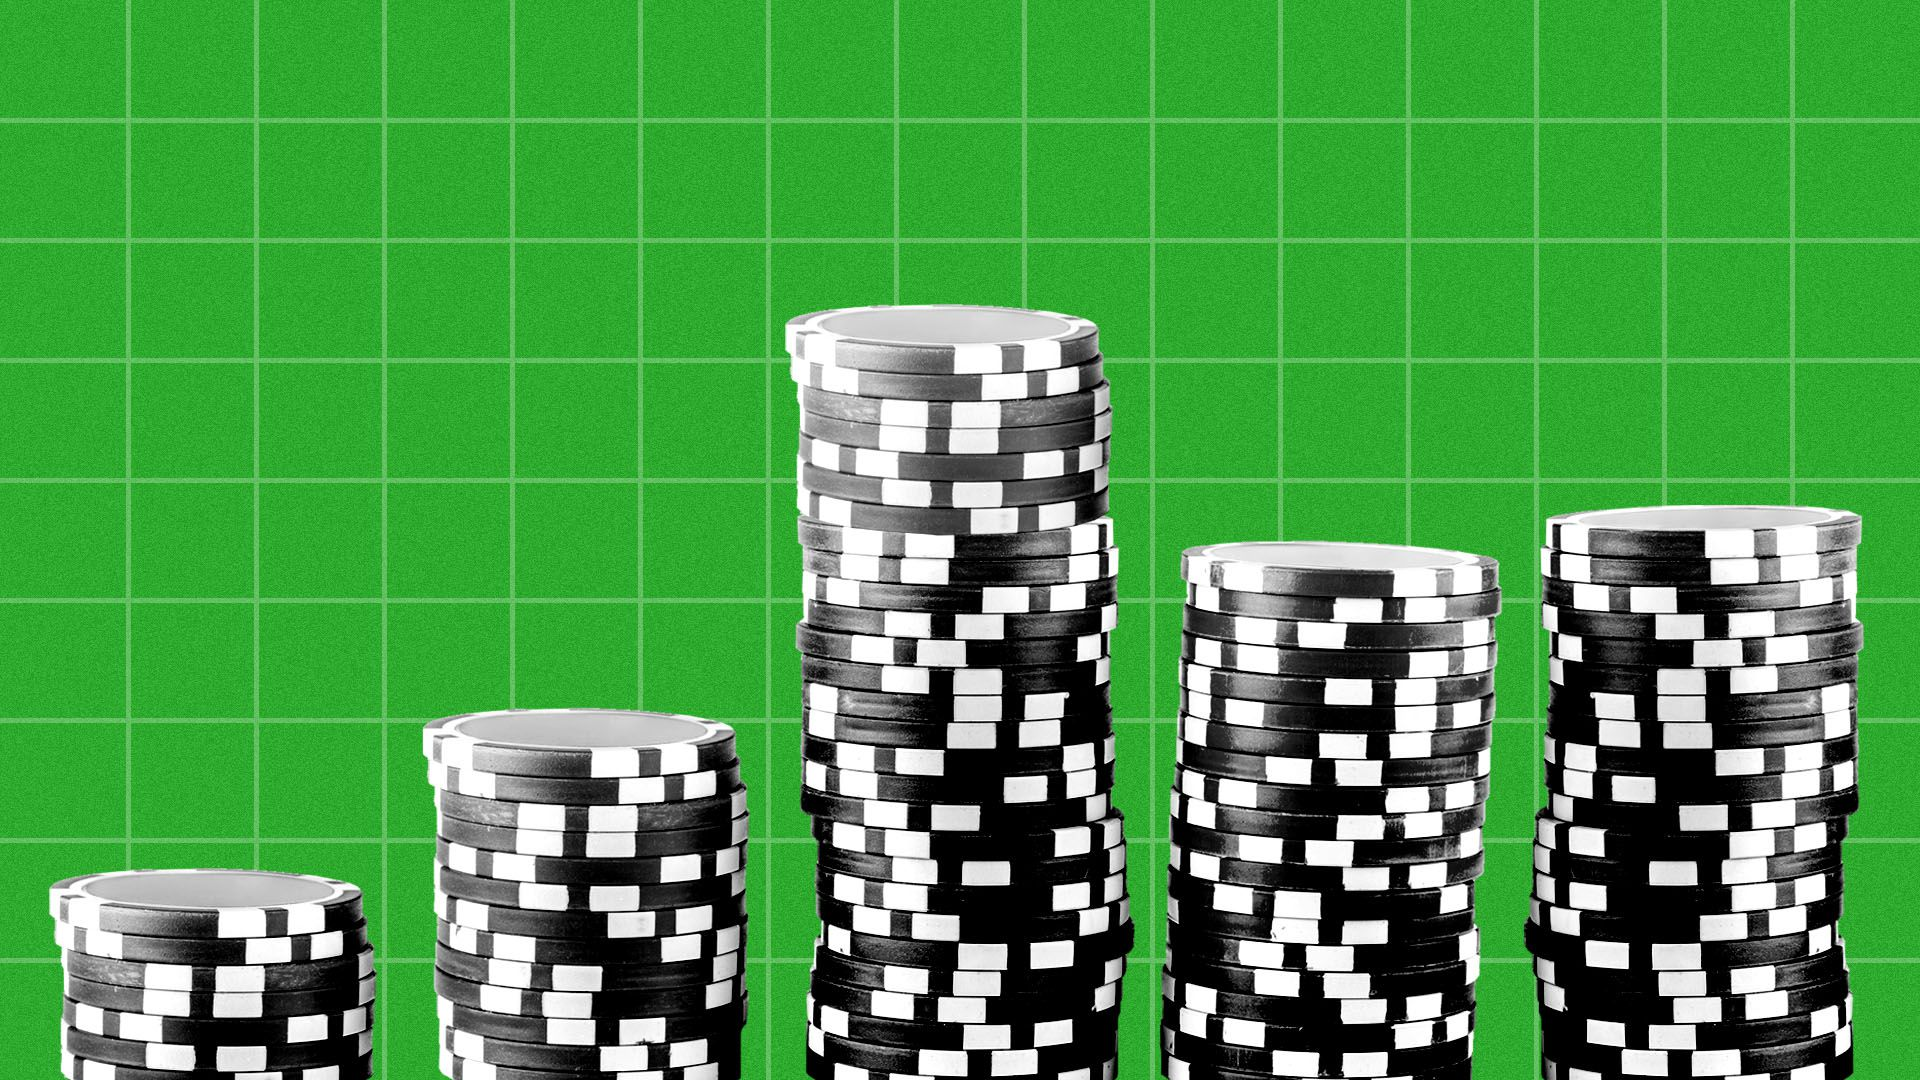 Three stacks of gambling chips